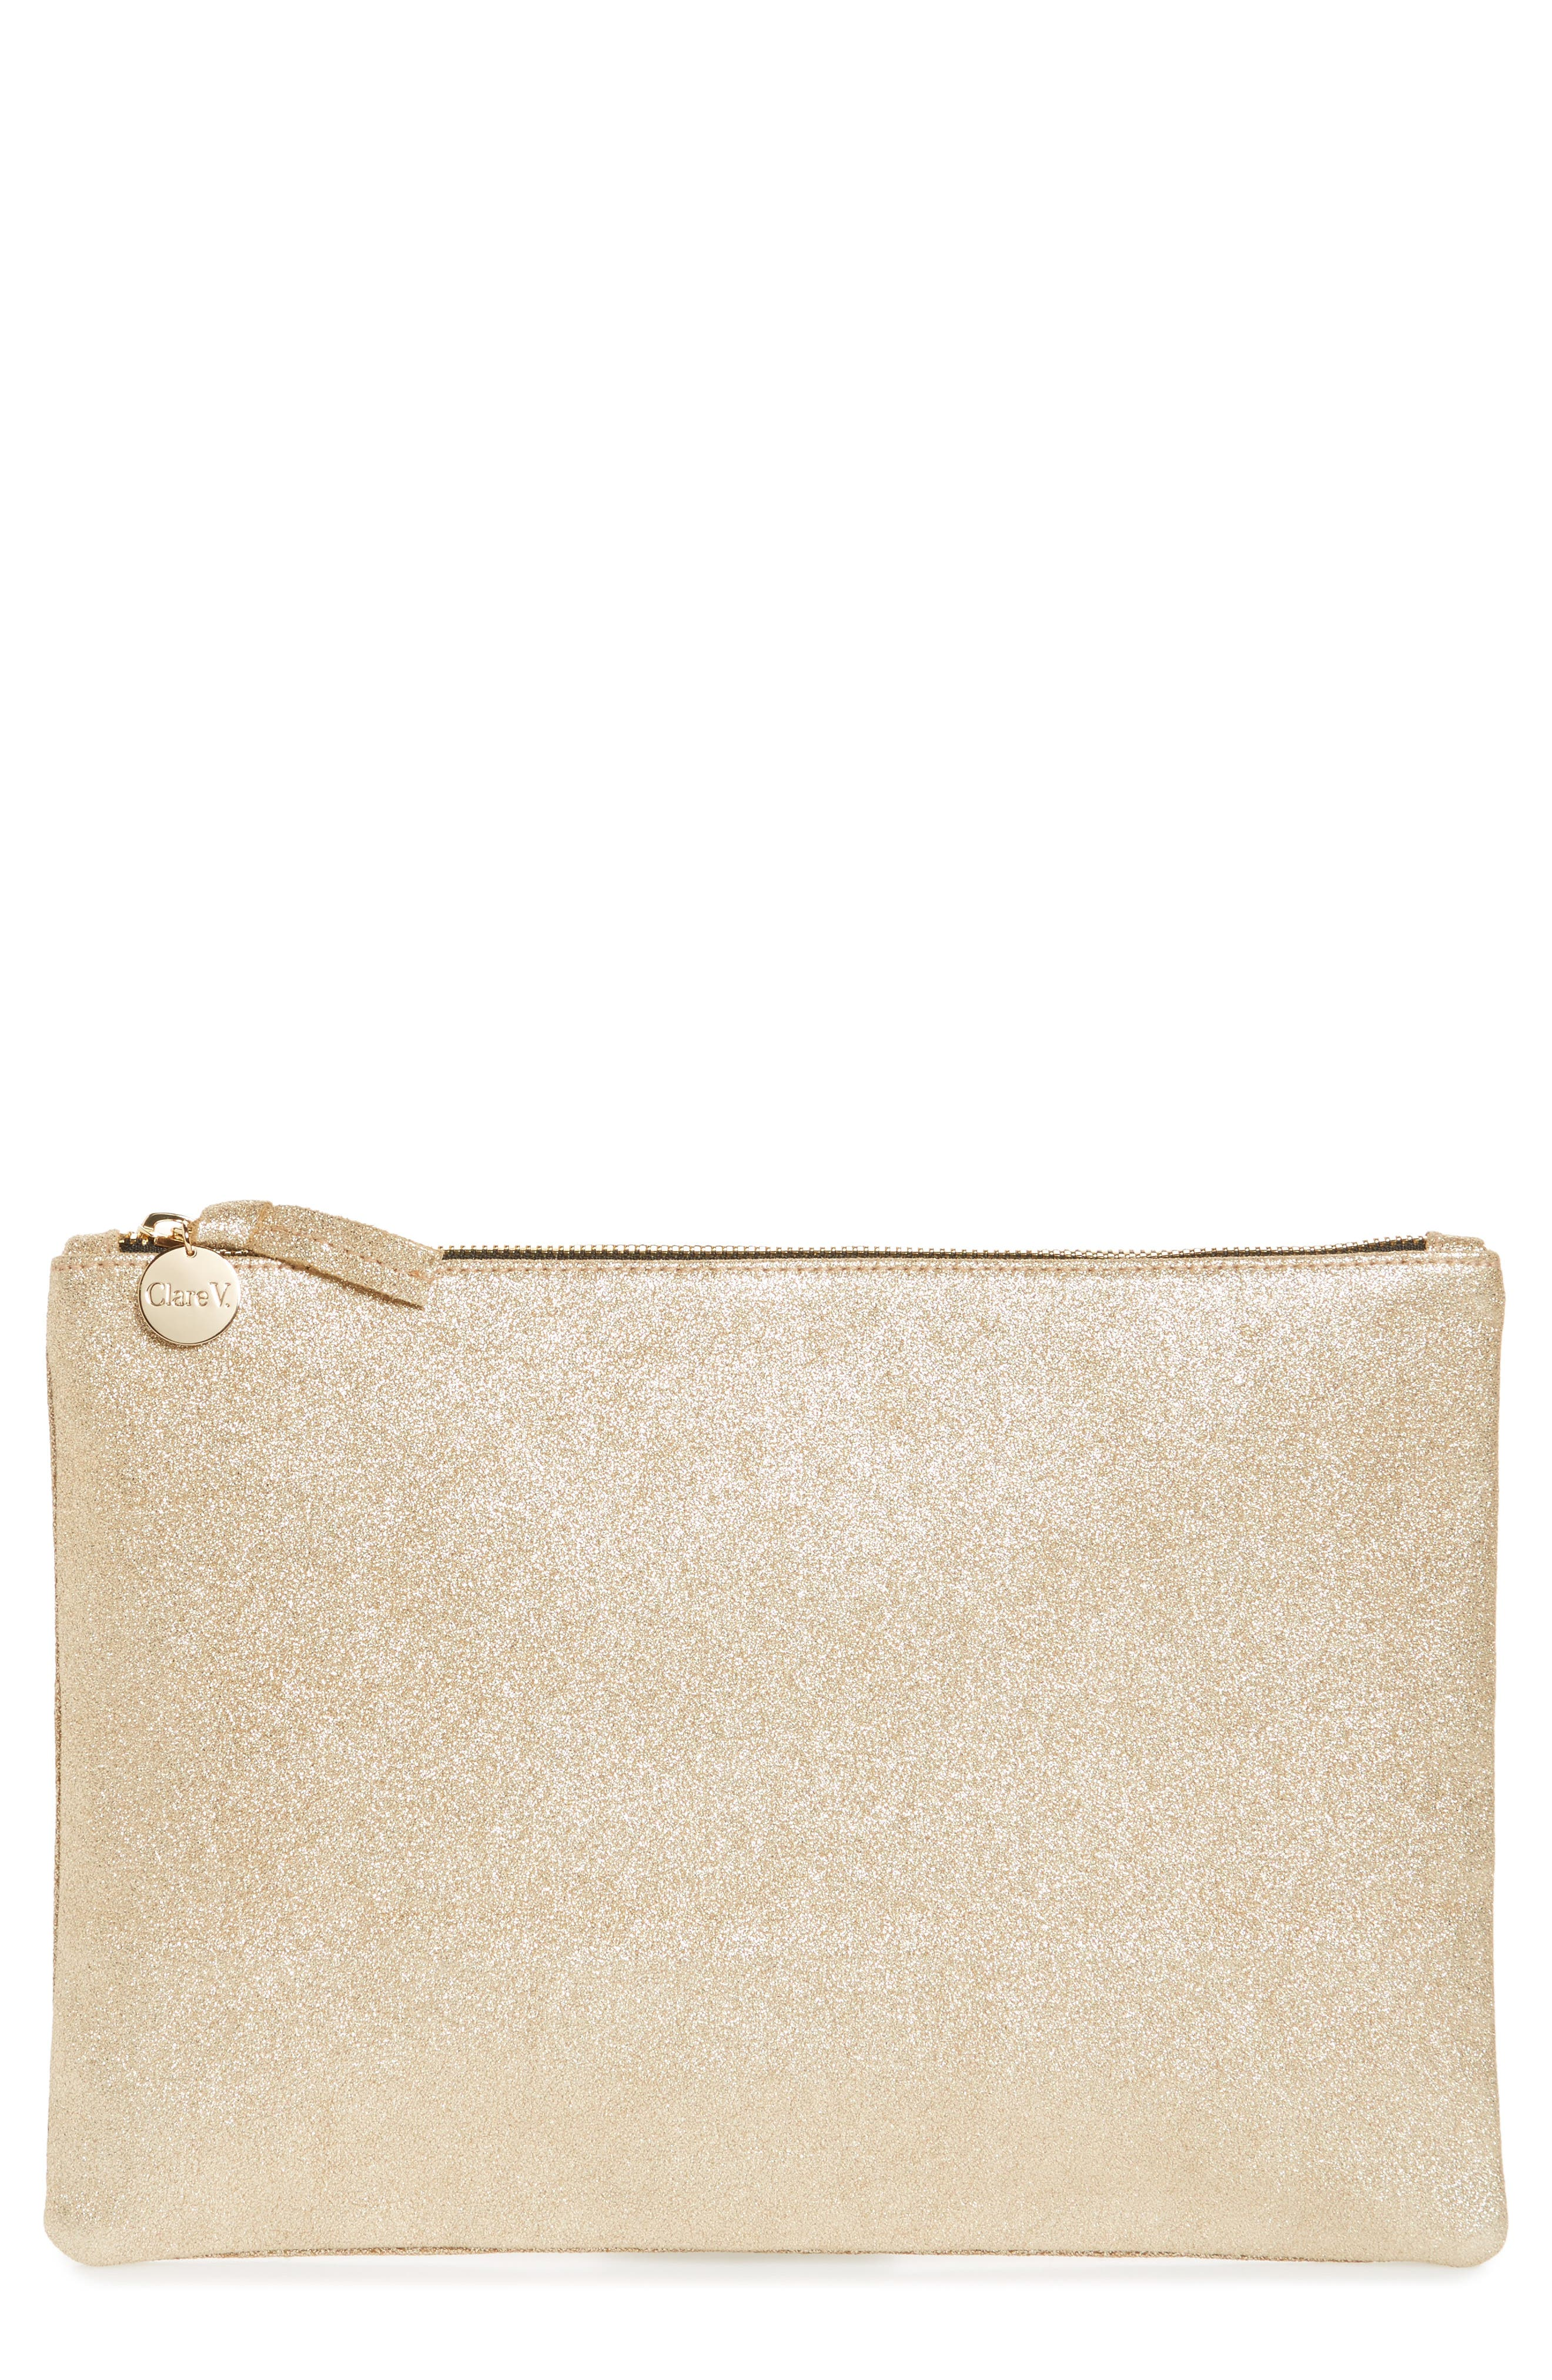 Alternate Image 1 Selected - Clare V. Maison Metallic Suede Flat Clutch